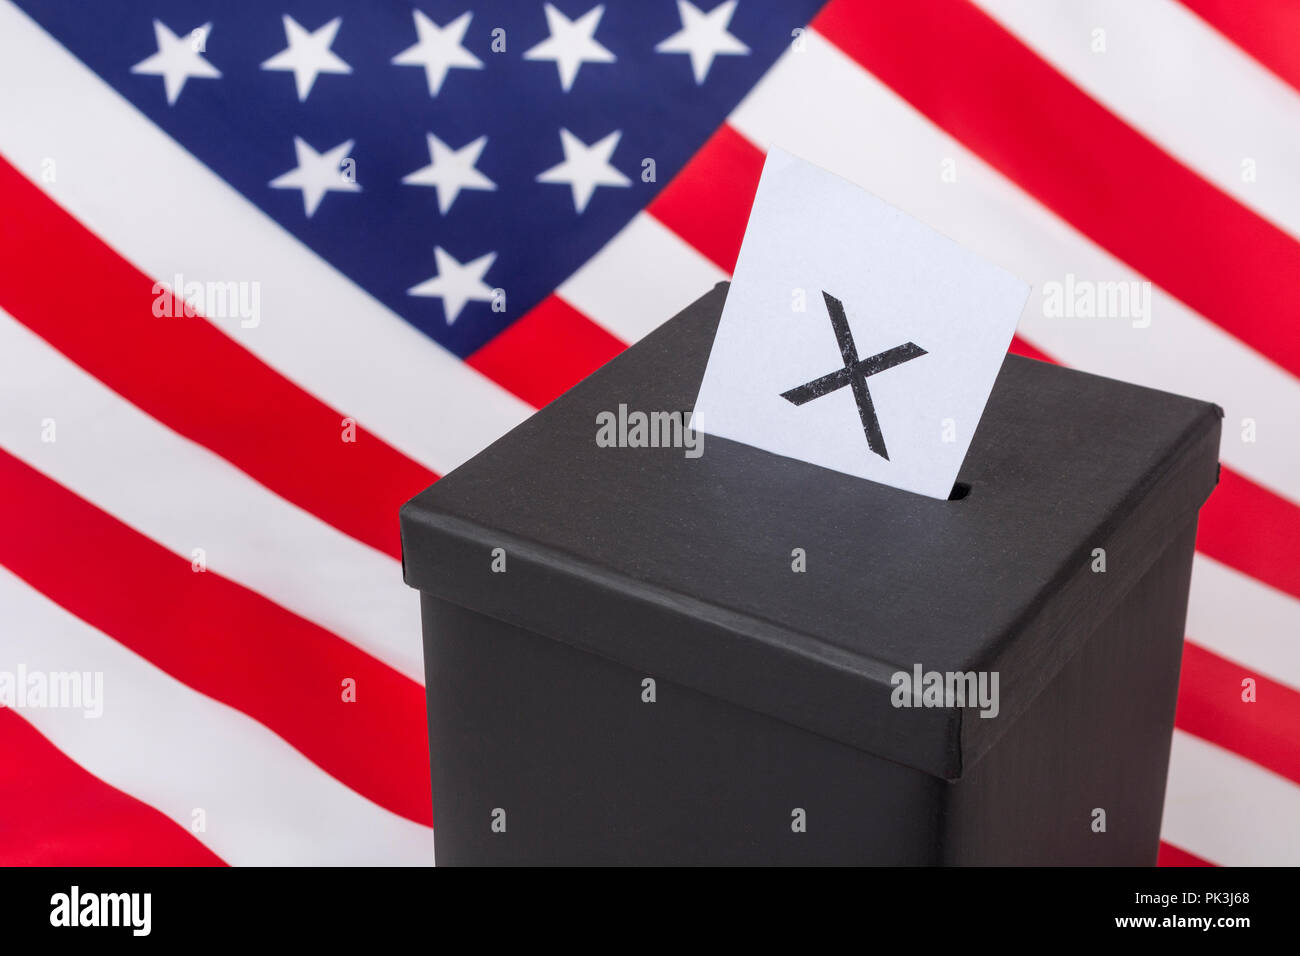 2018 US Midterm Election / Midterm elections America in November 2018, 2020 US Elections. Stock Photo